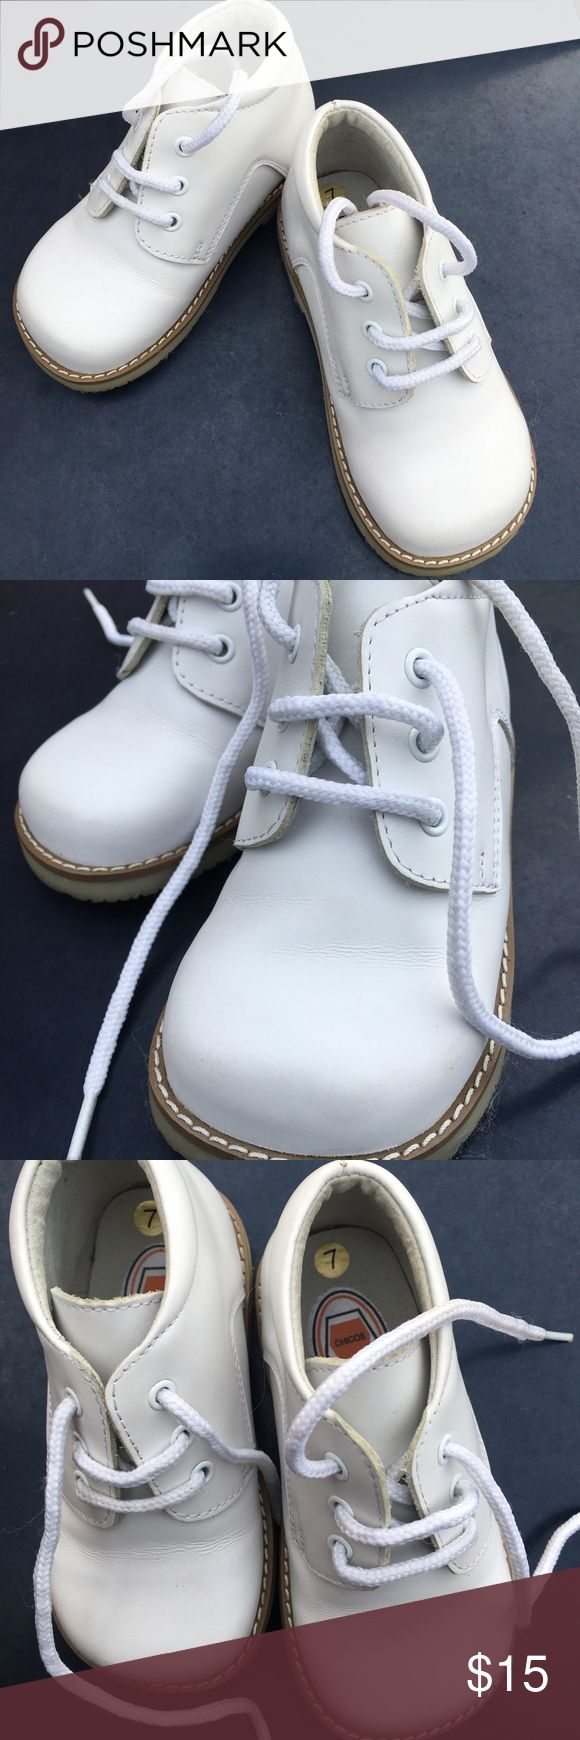 White Josmo Oxfords Dress up or down ankle height Oxfords. Leather upper and leather lining. Perfect walking shoe in excellent condition. These shoes will compliment an Easter outfit, Christening outfit or any special occasion as well. Chicos Shoes Dress Shoes